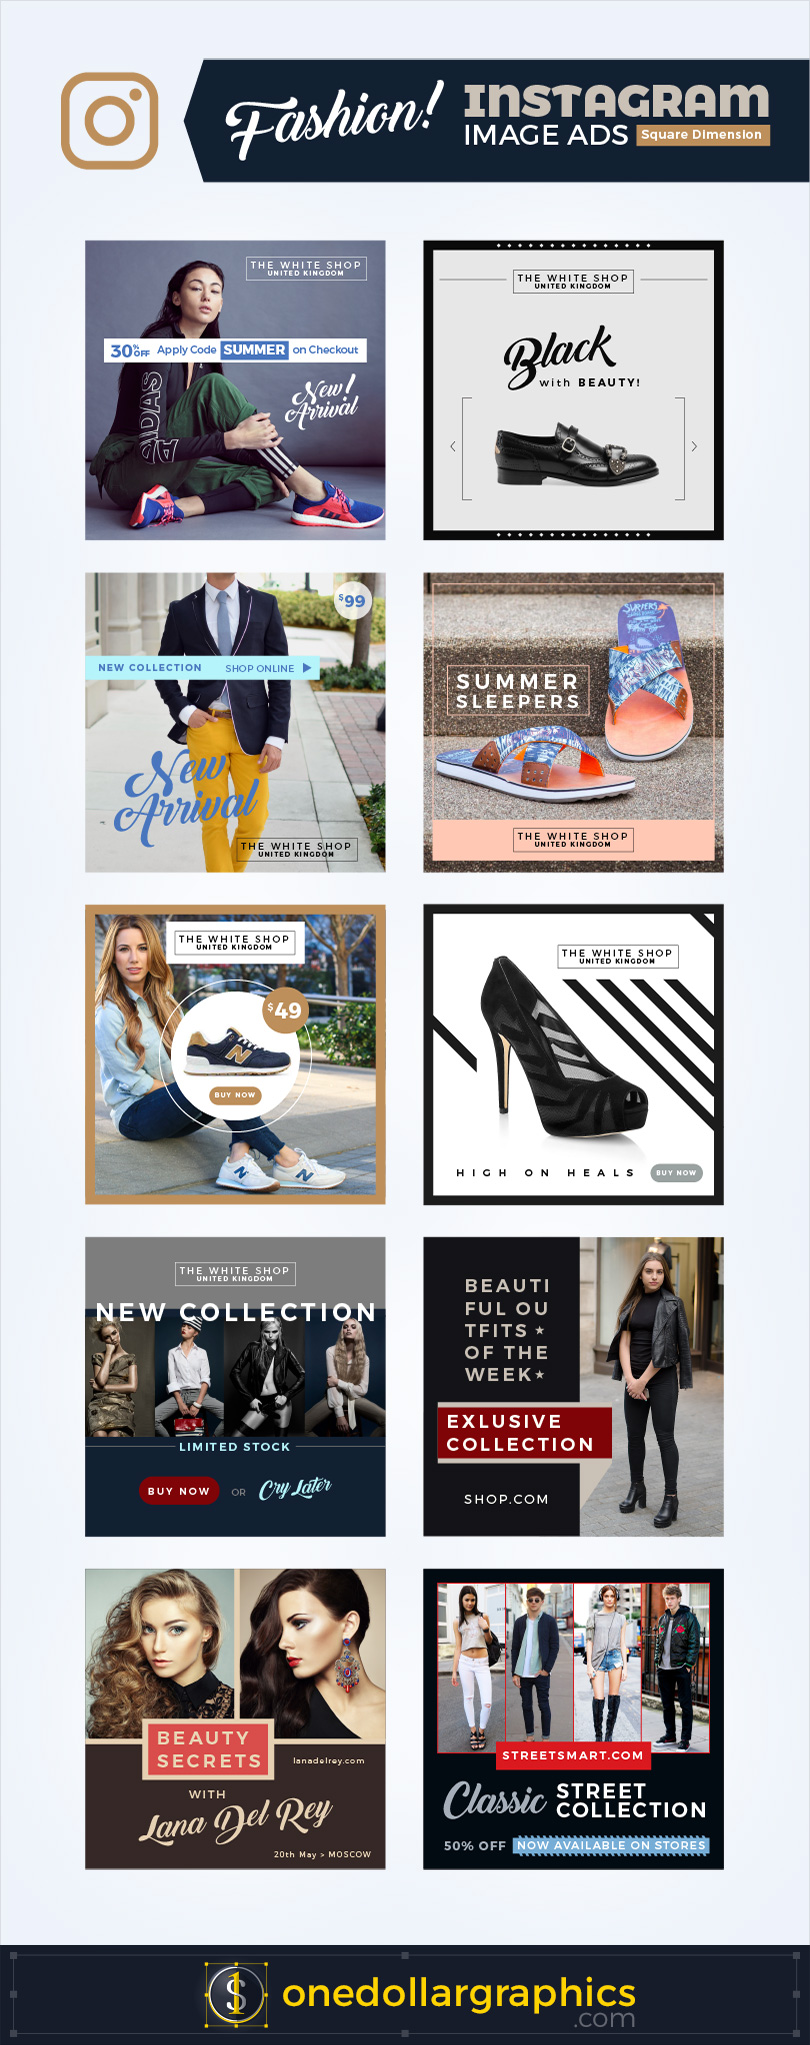 10 Fashion Instagram Web / Image Advertising Banner Template Designs ...